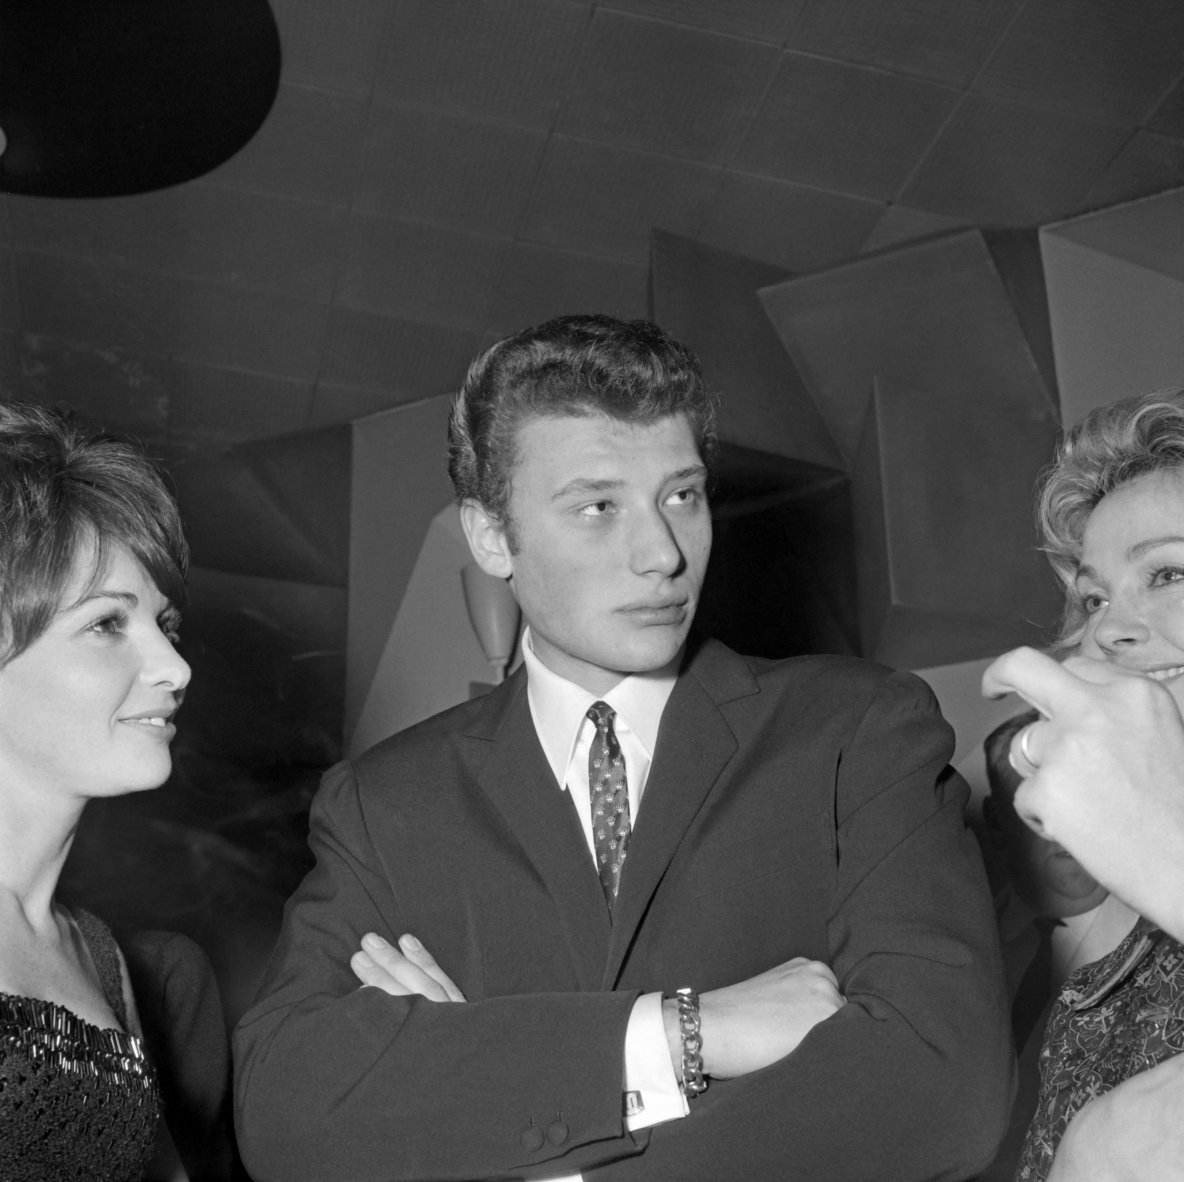 Comment Jean-Philippe Smet est devenu Johnny Hallyday